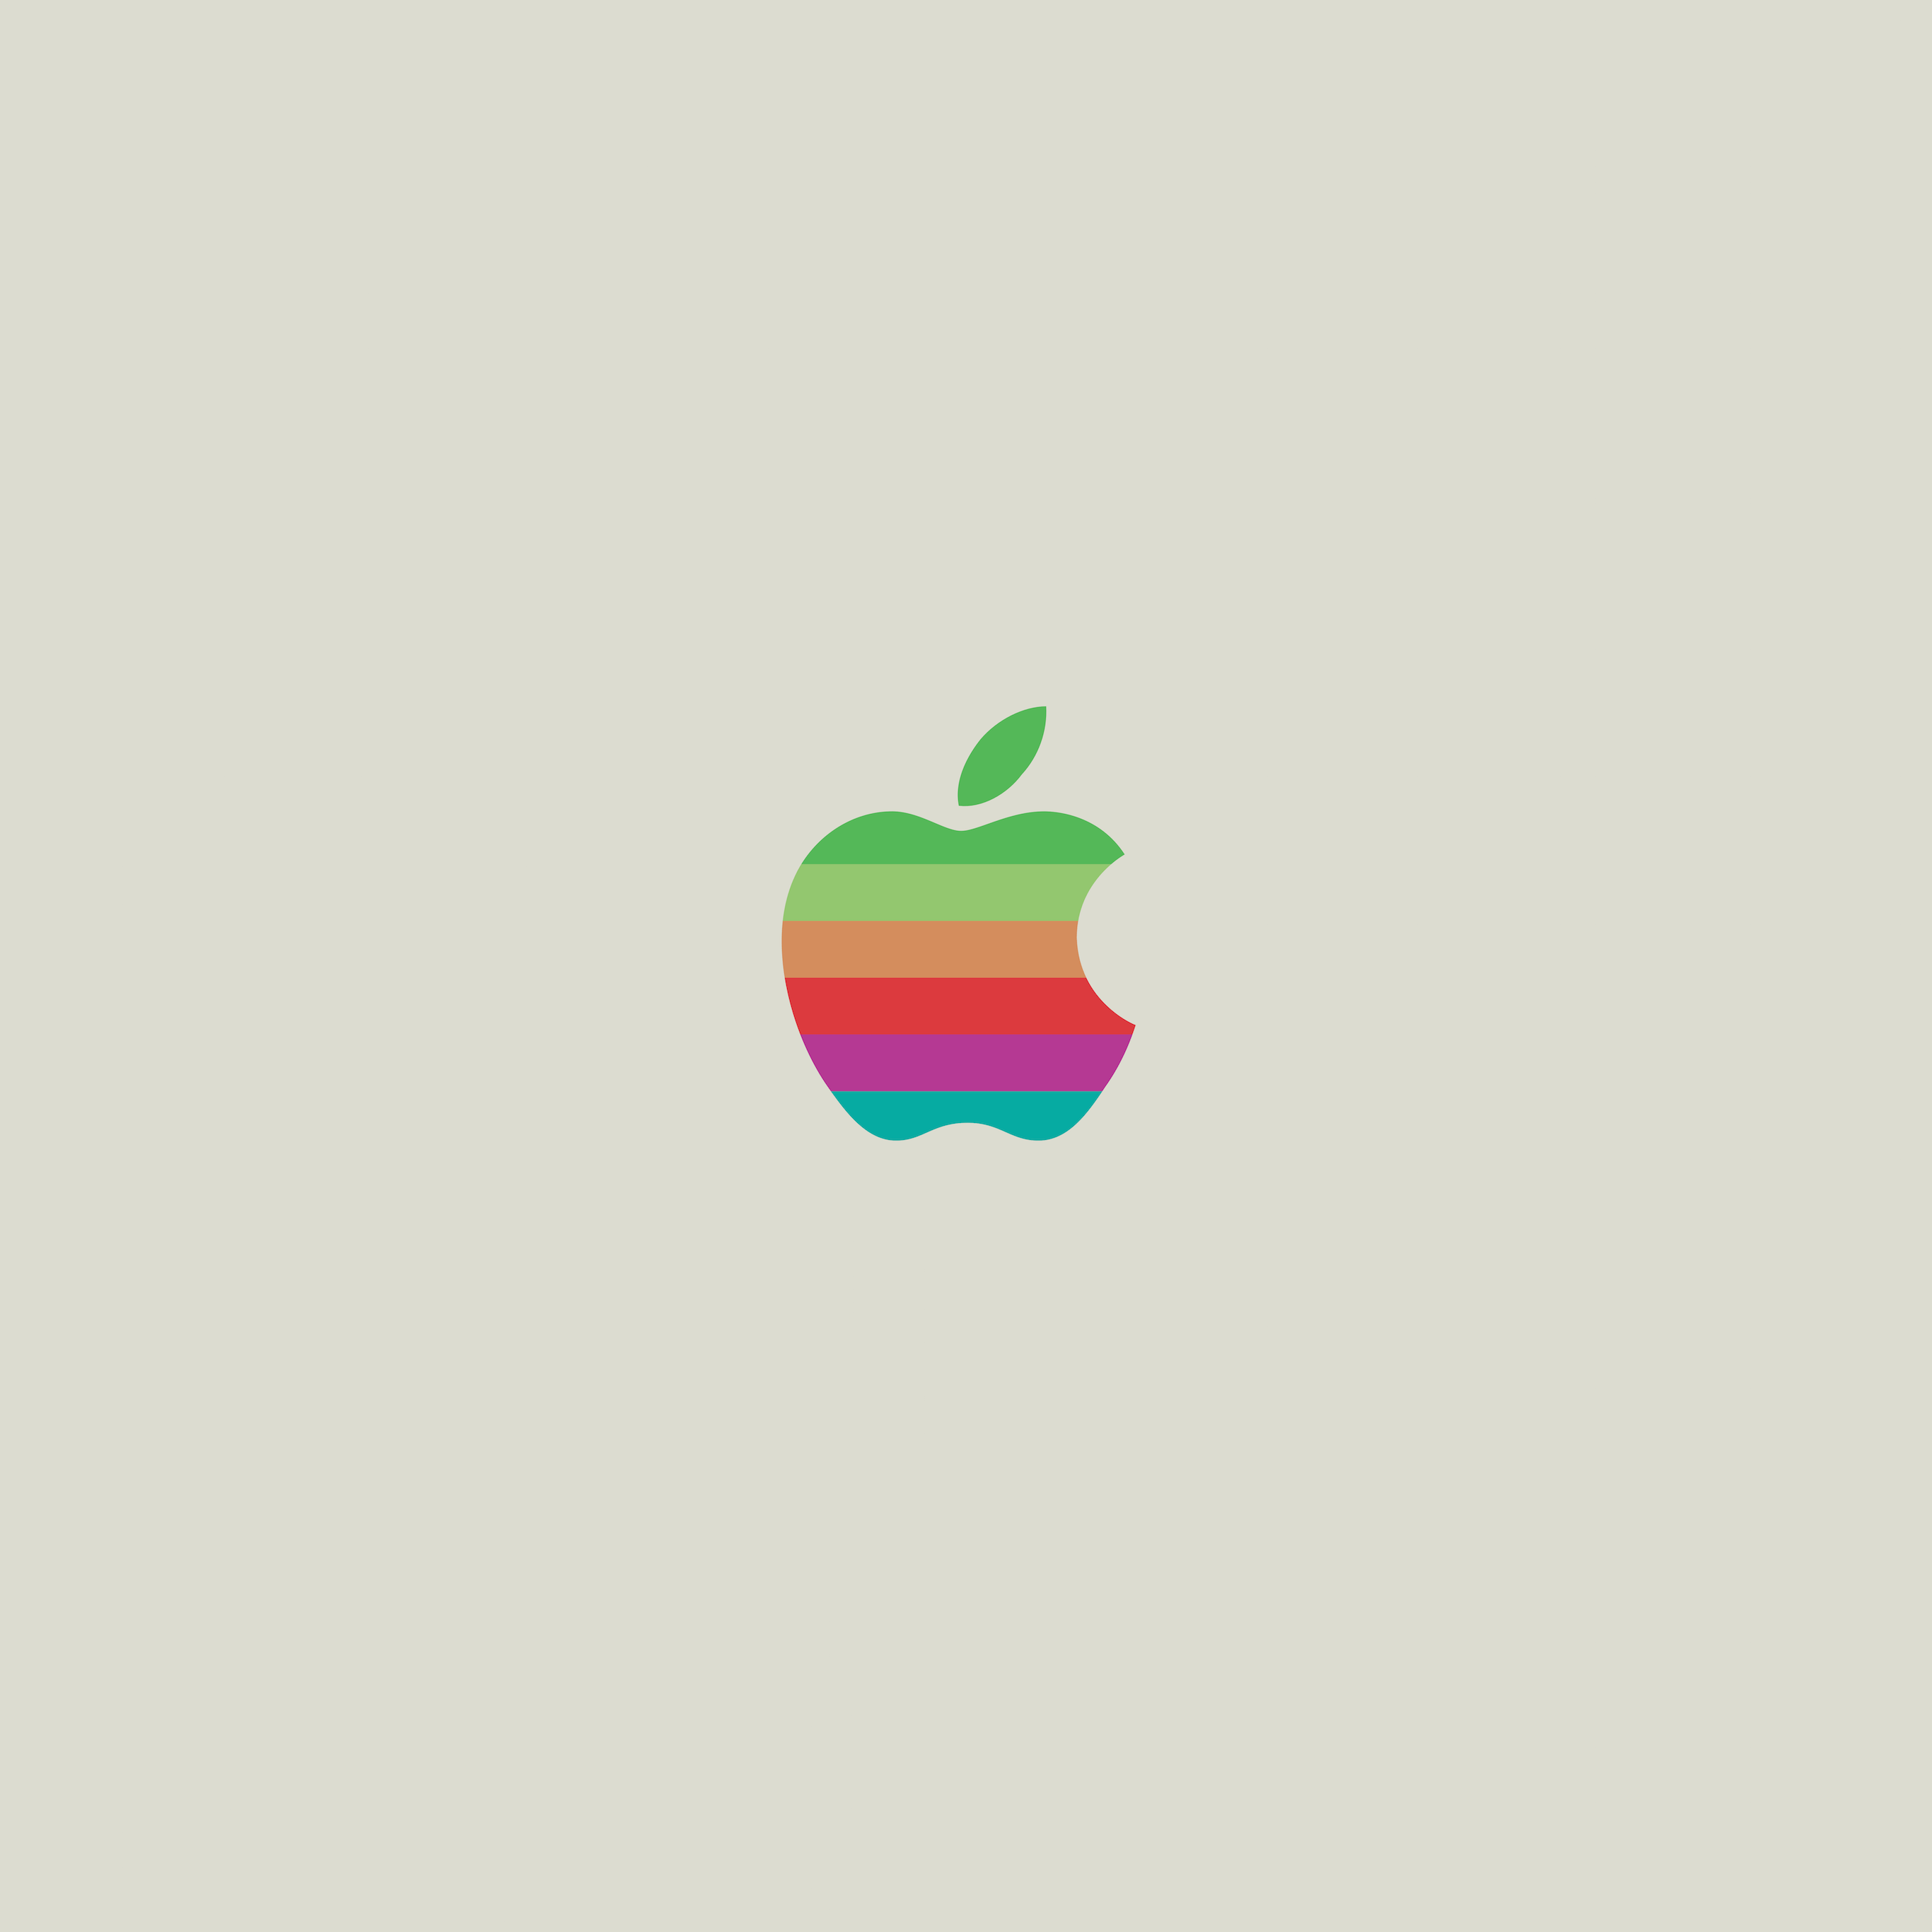 Apple Logo For Wallpapers